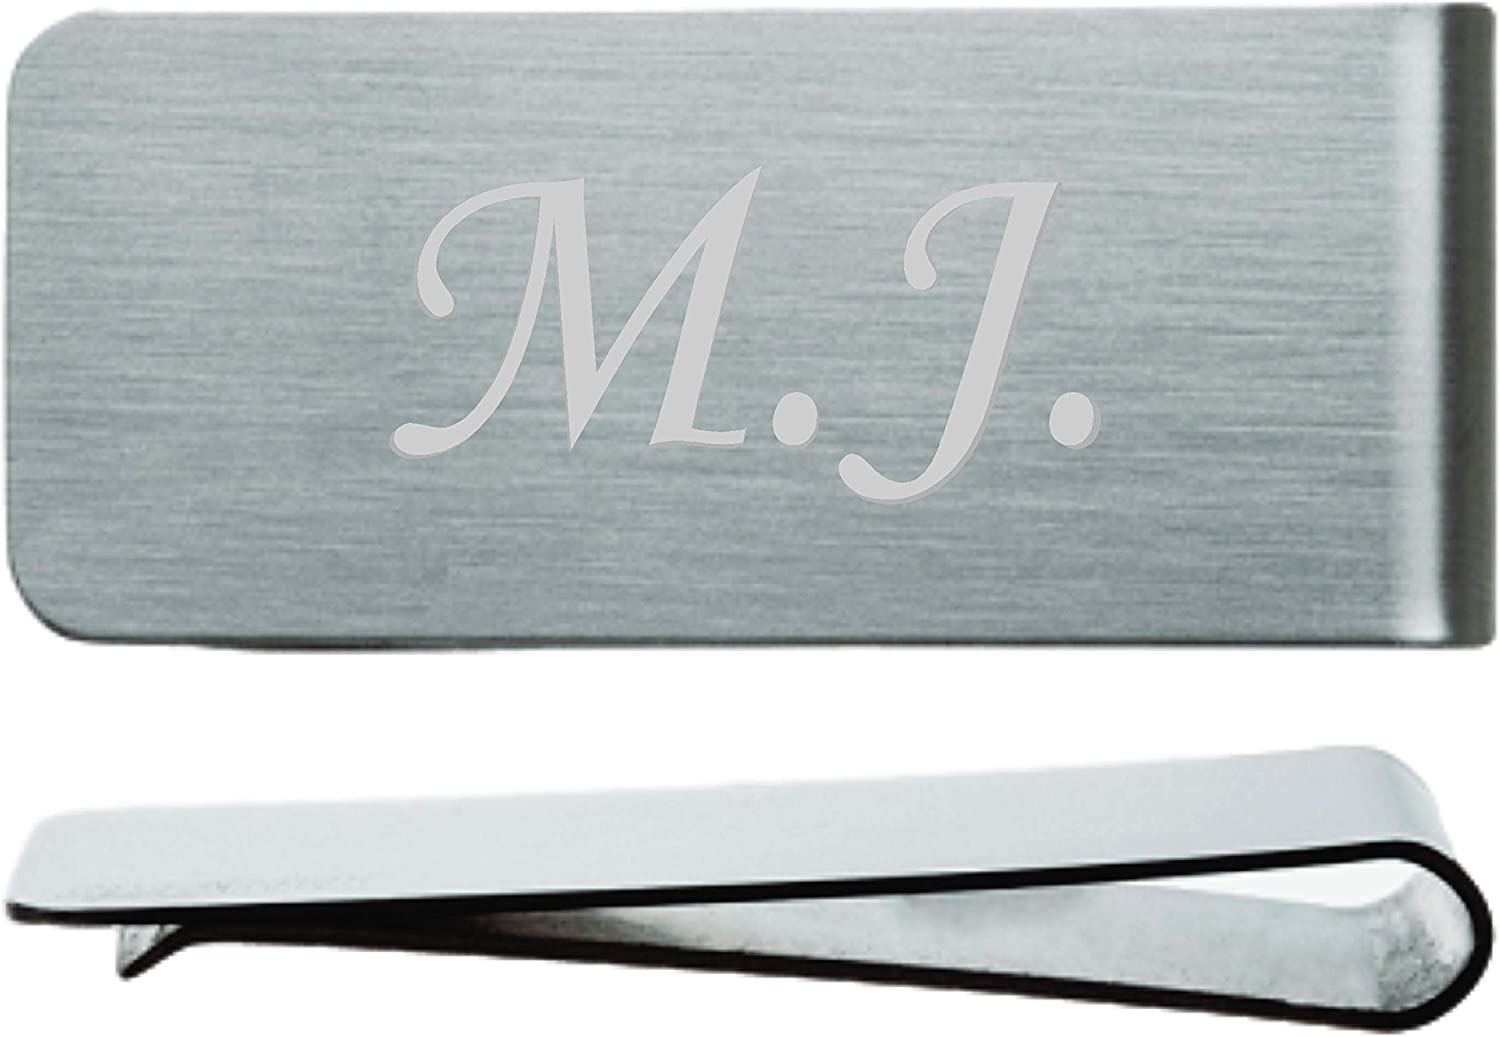 Custom engraved Money Clip initials name word wallet